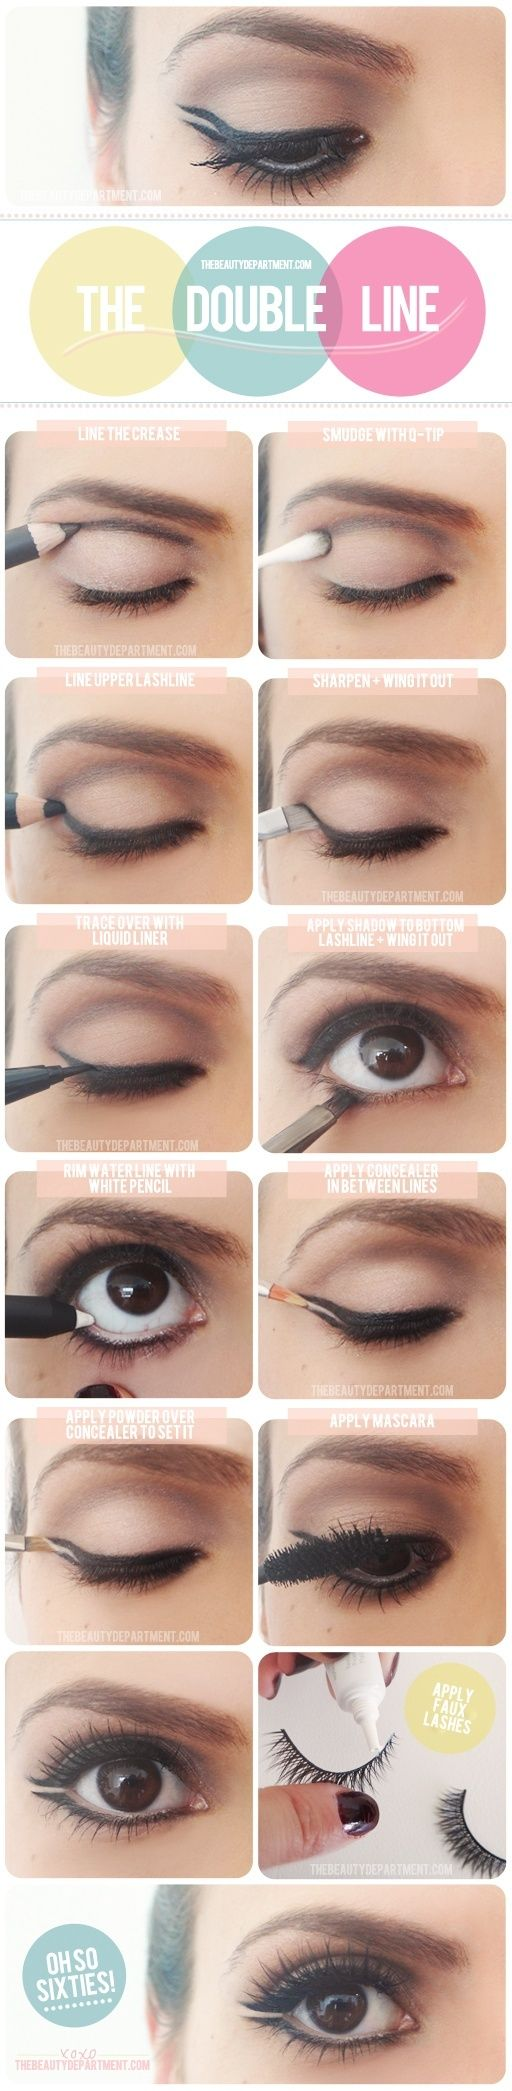 Double Eyeliner For Ventage Look